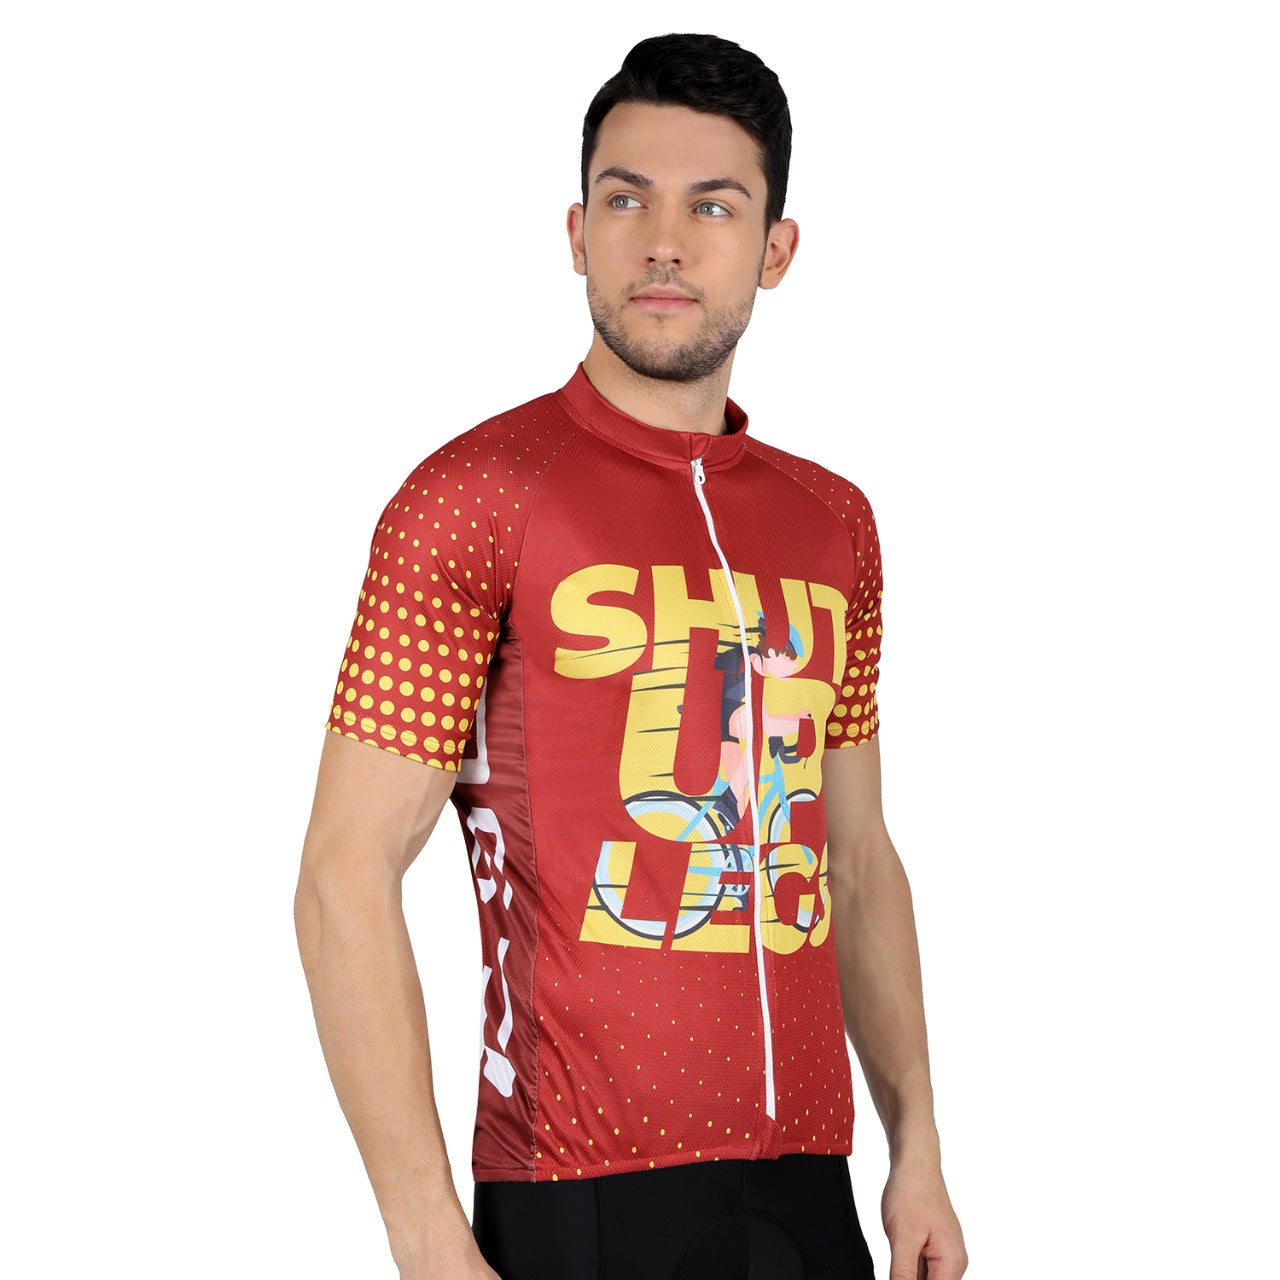 Endurance Shut Up Legs Cycling Jersey - Maroon - Cyclop.in